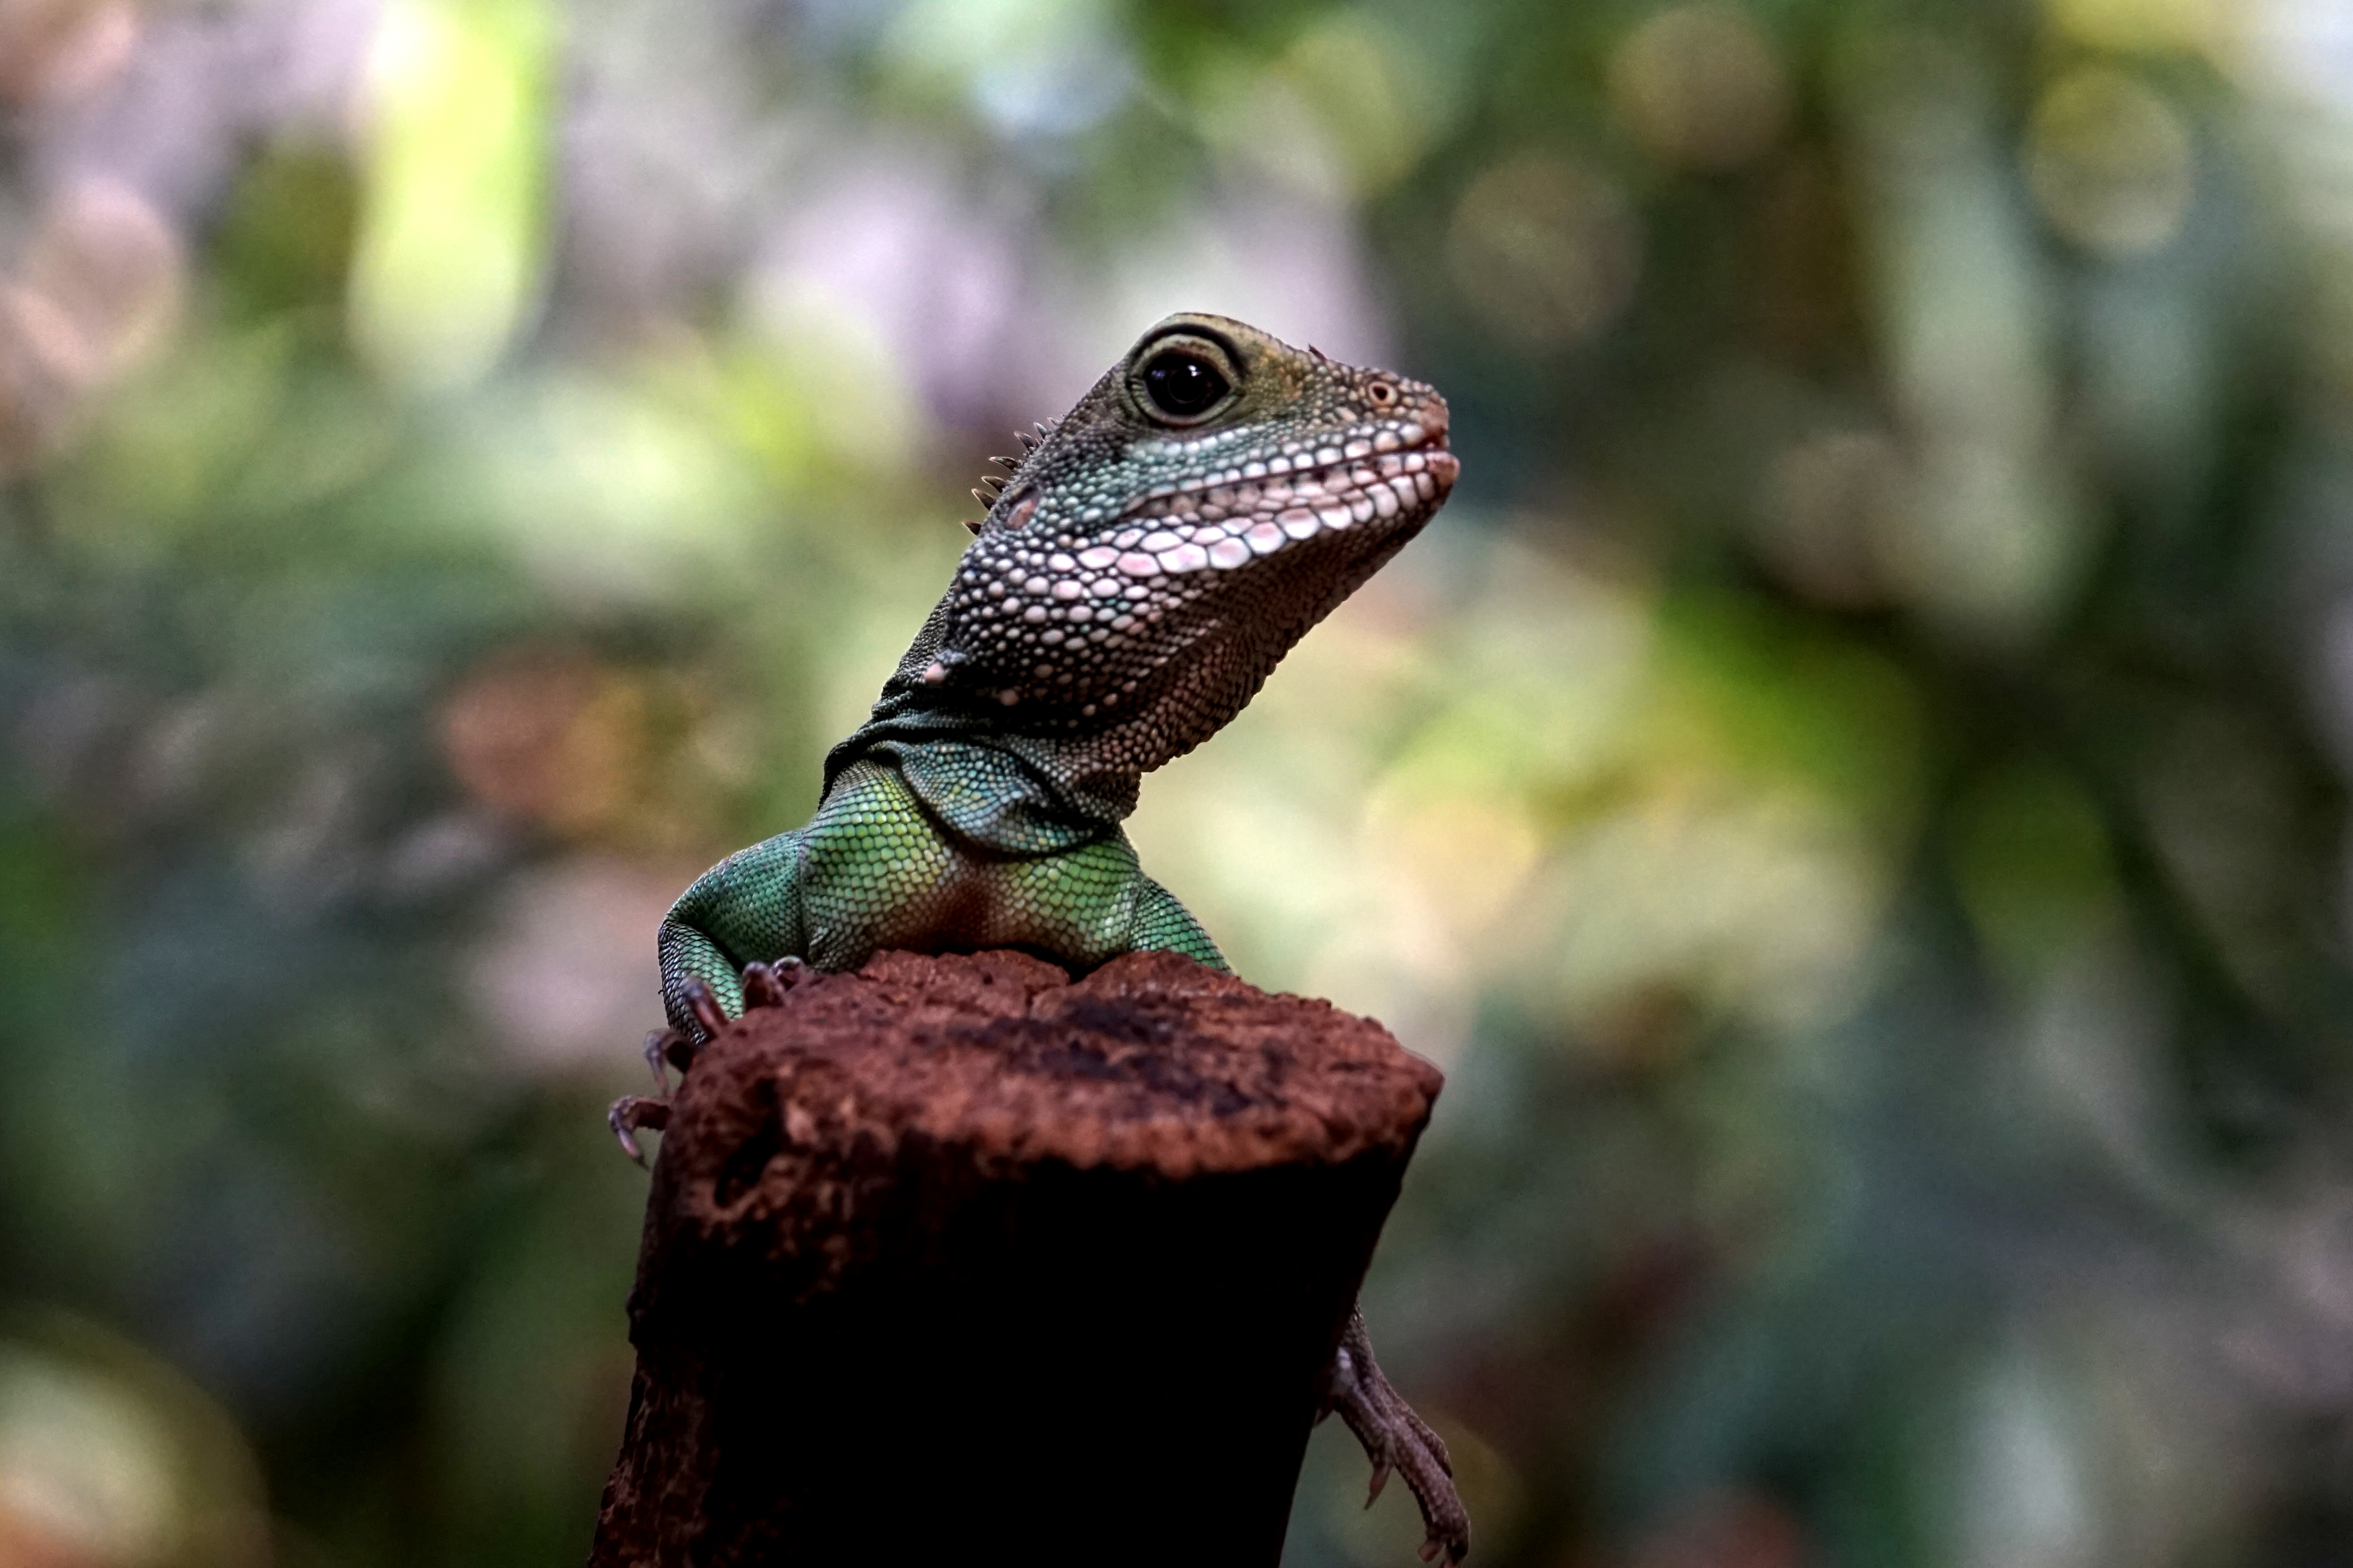 144051 download wallpaper Animals, Lizard, Amphibian, Reptile screensavers and pictures for free